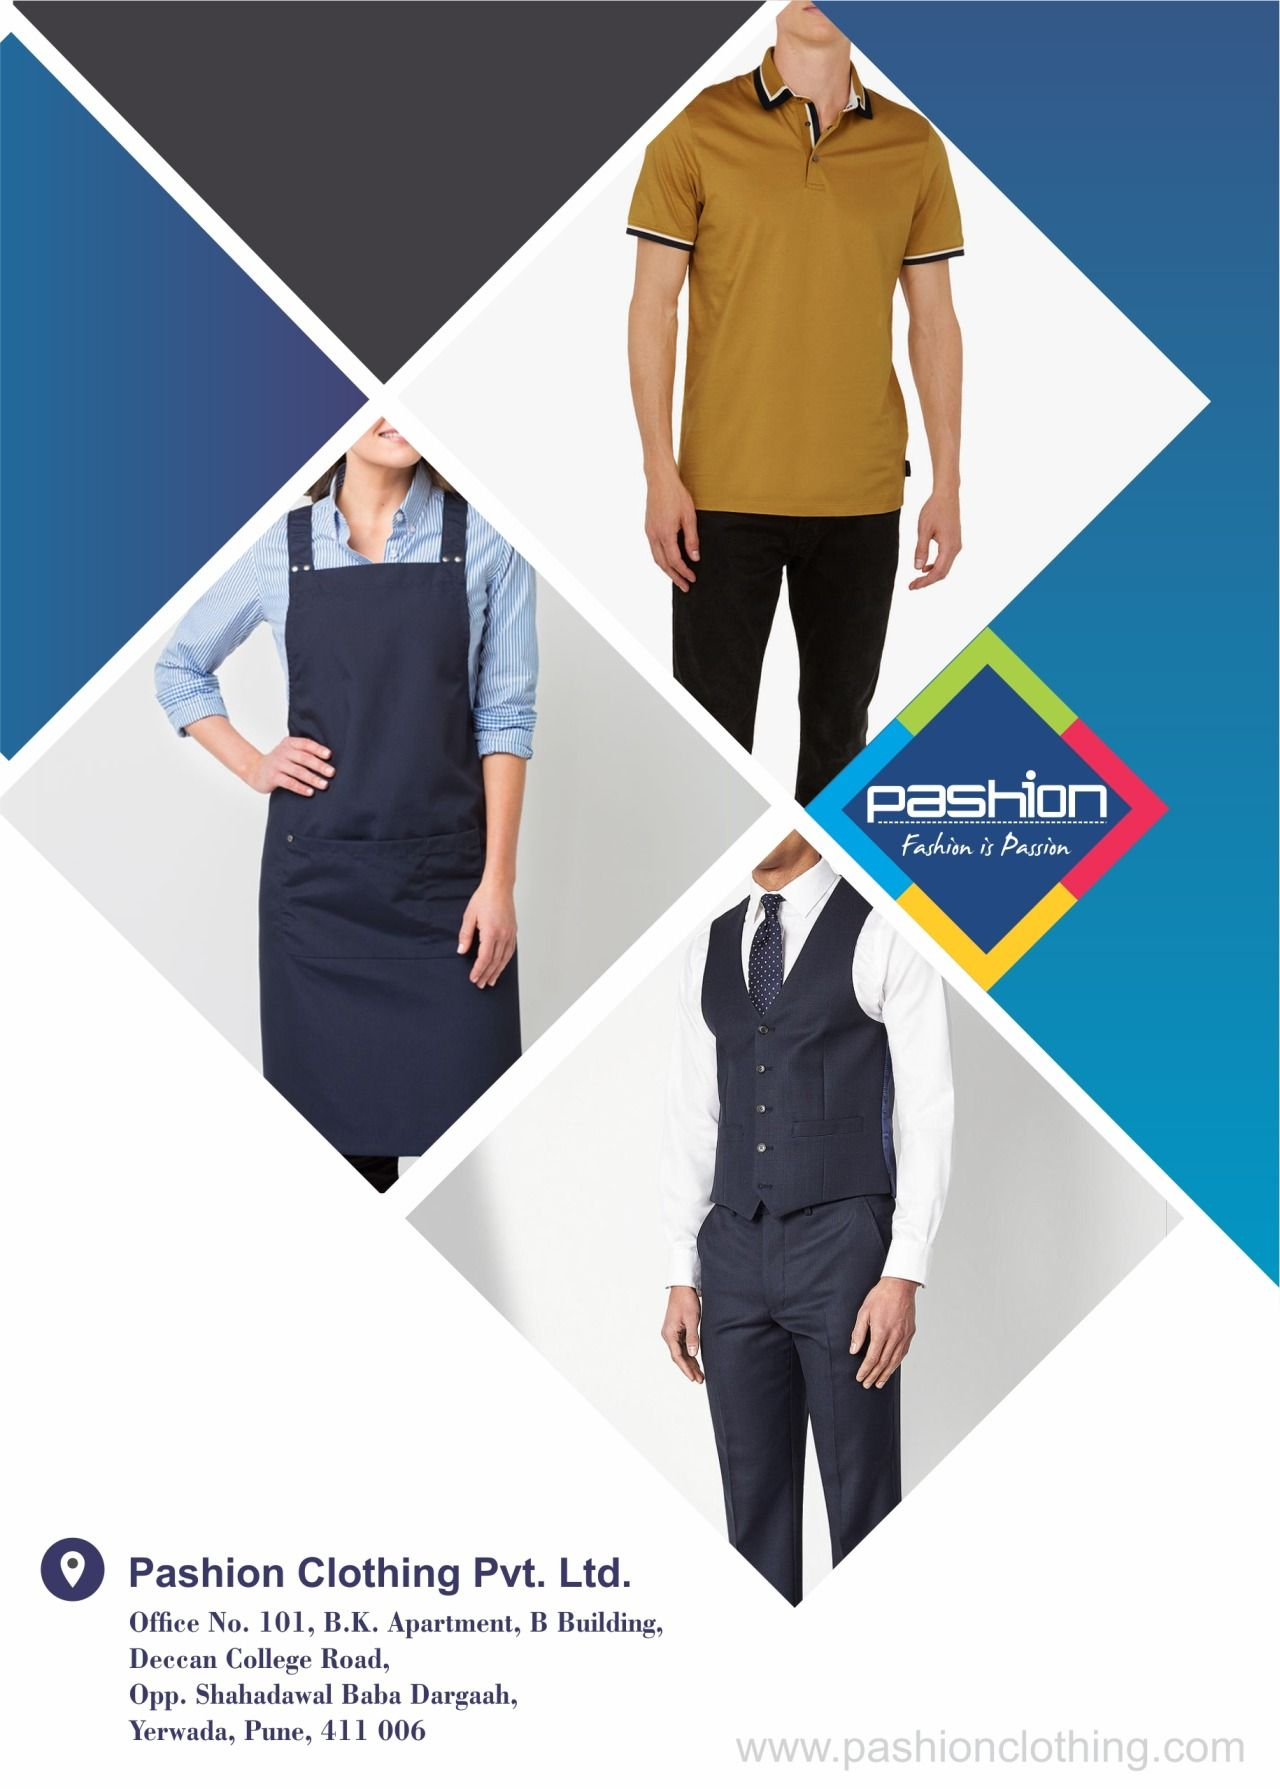 cloth manufacturer in pune pashion clothing pvt ltd